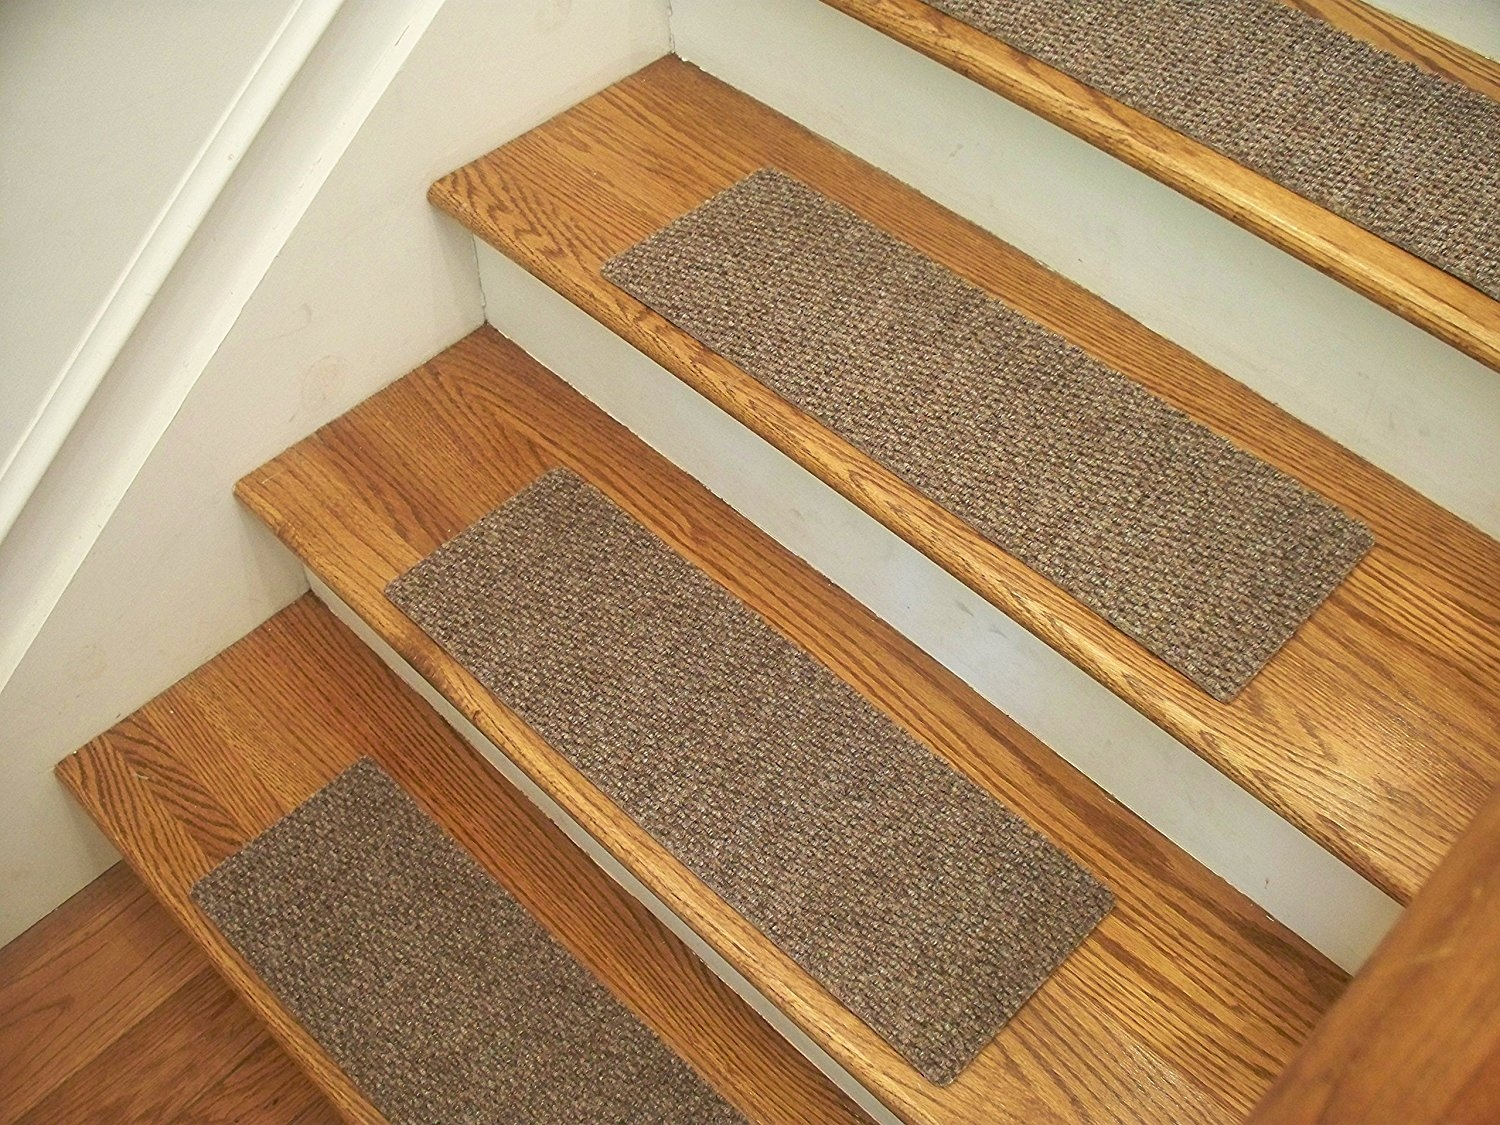 Amazon Essential Carpet Stair Treads Style Berber Color Throughout Carpet Stair Treads Non Slip (View 3 of 20)